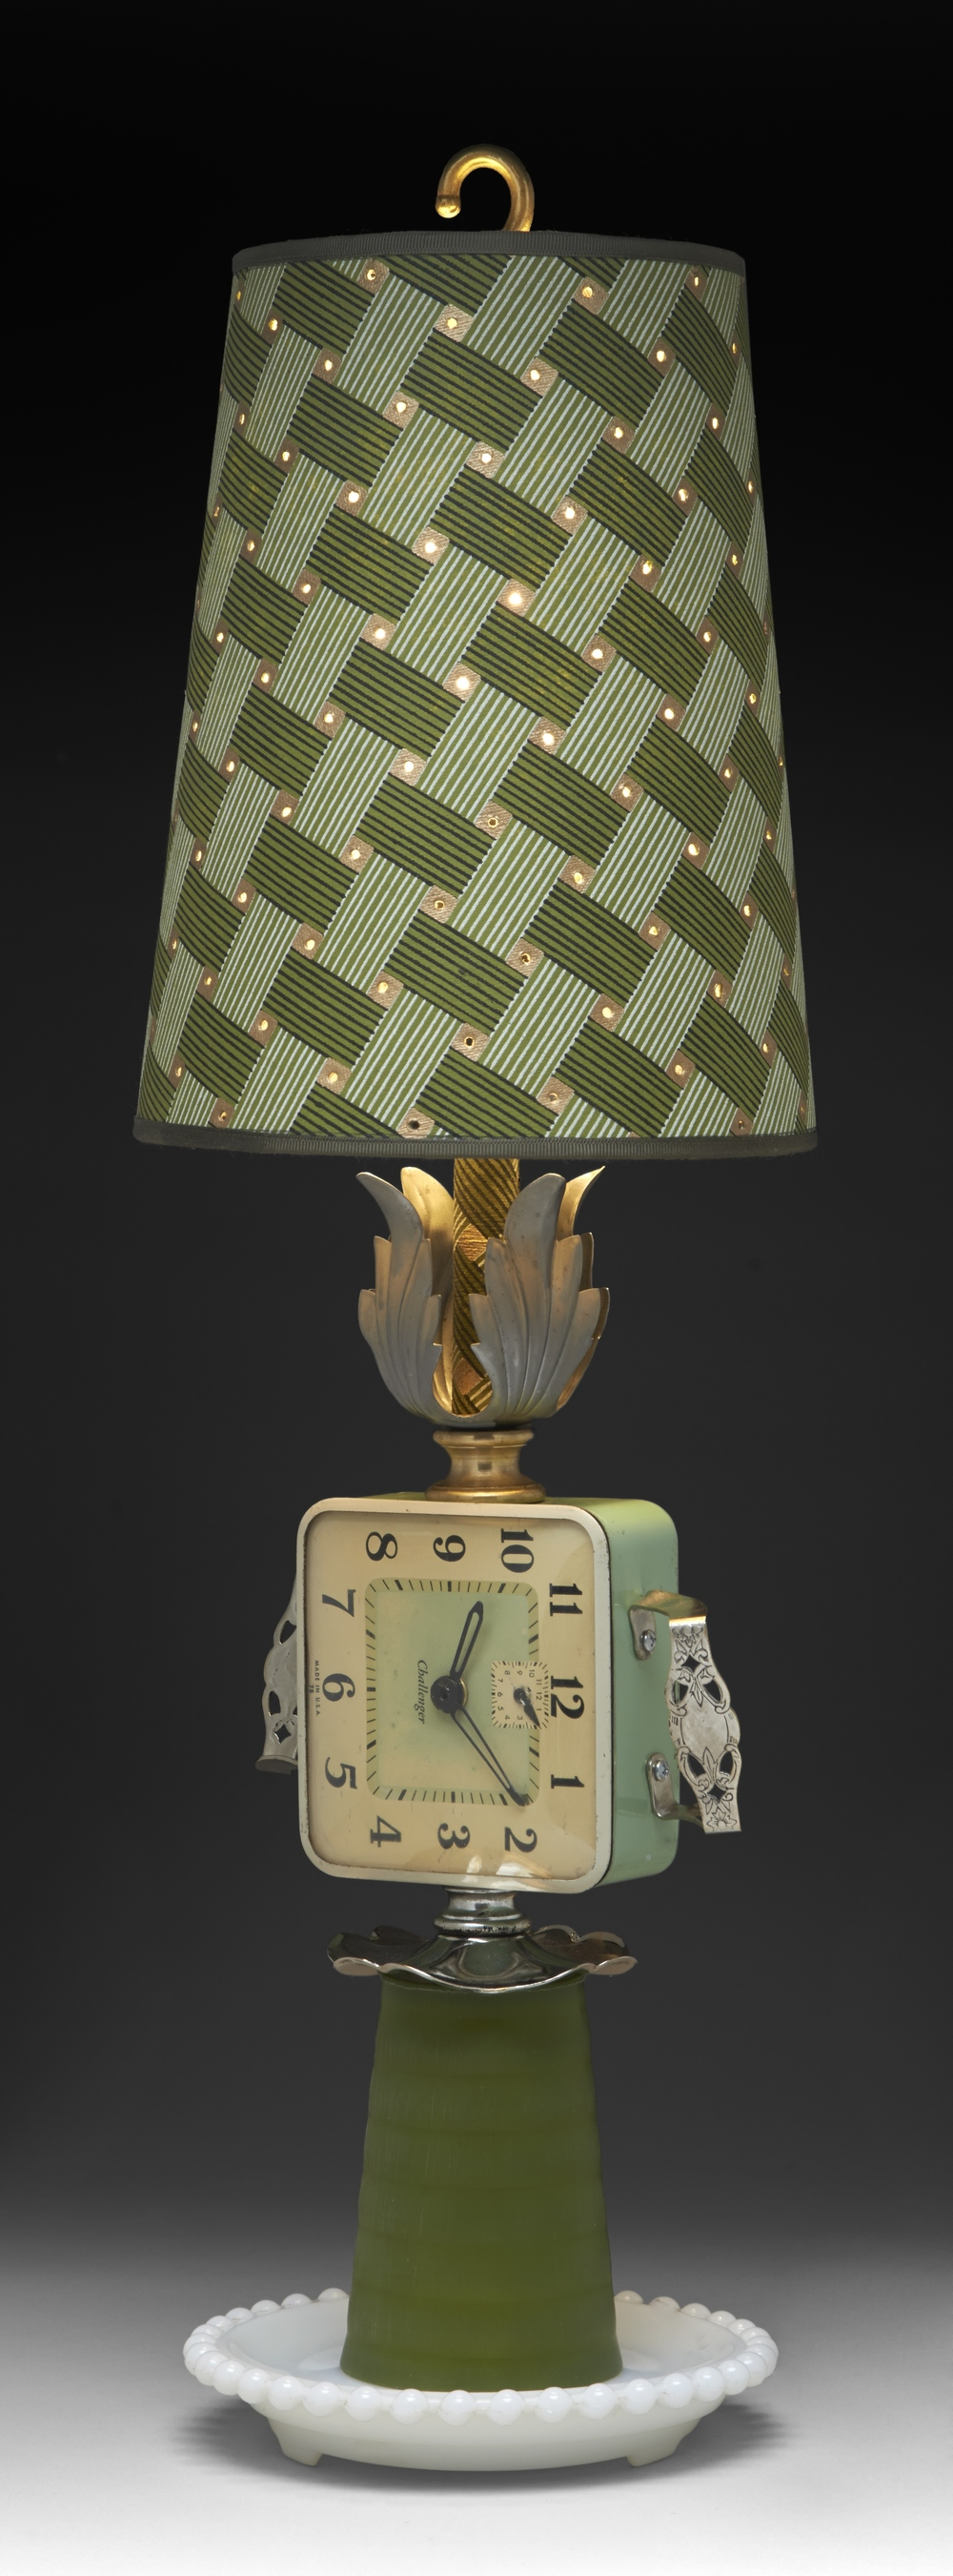 jpeg clock lamp.jpg